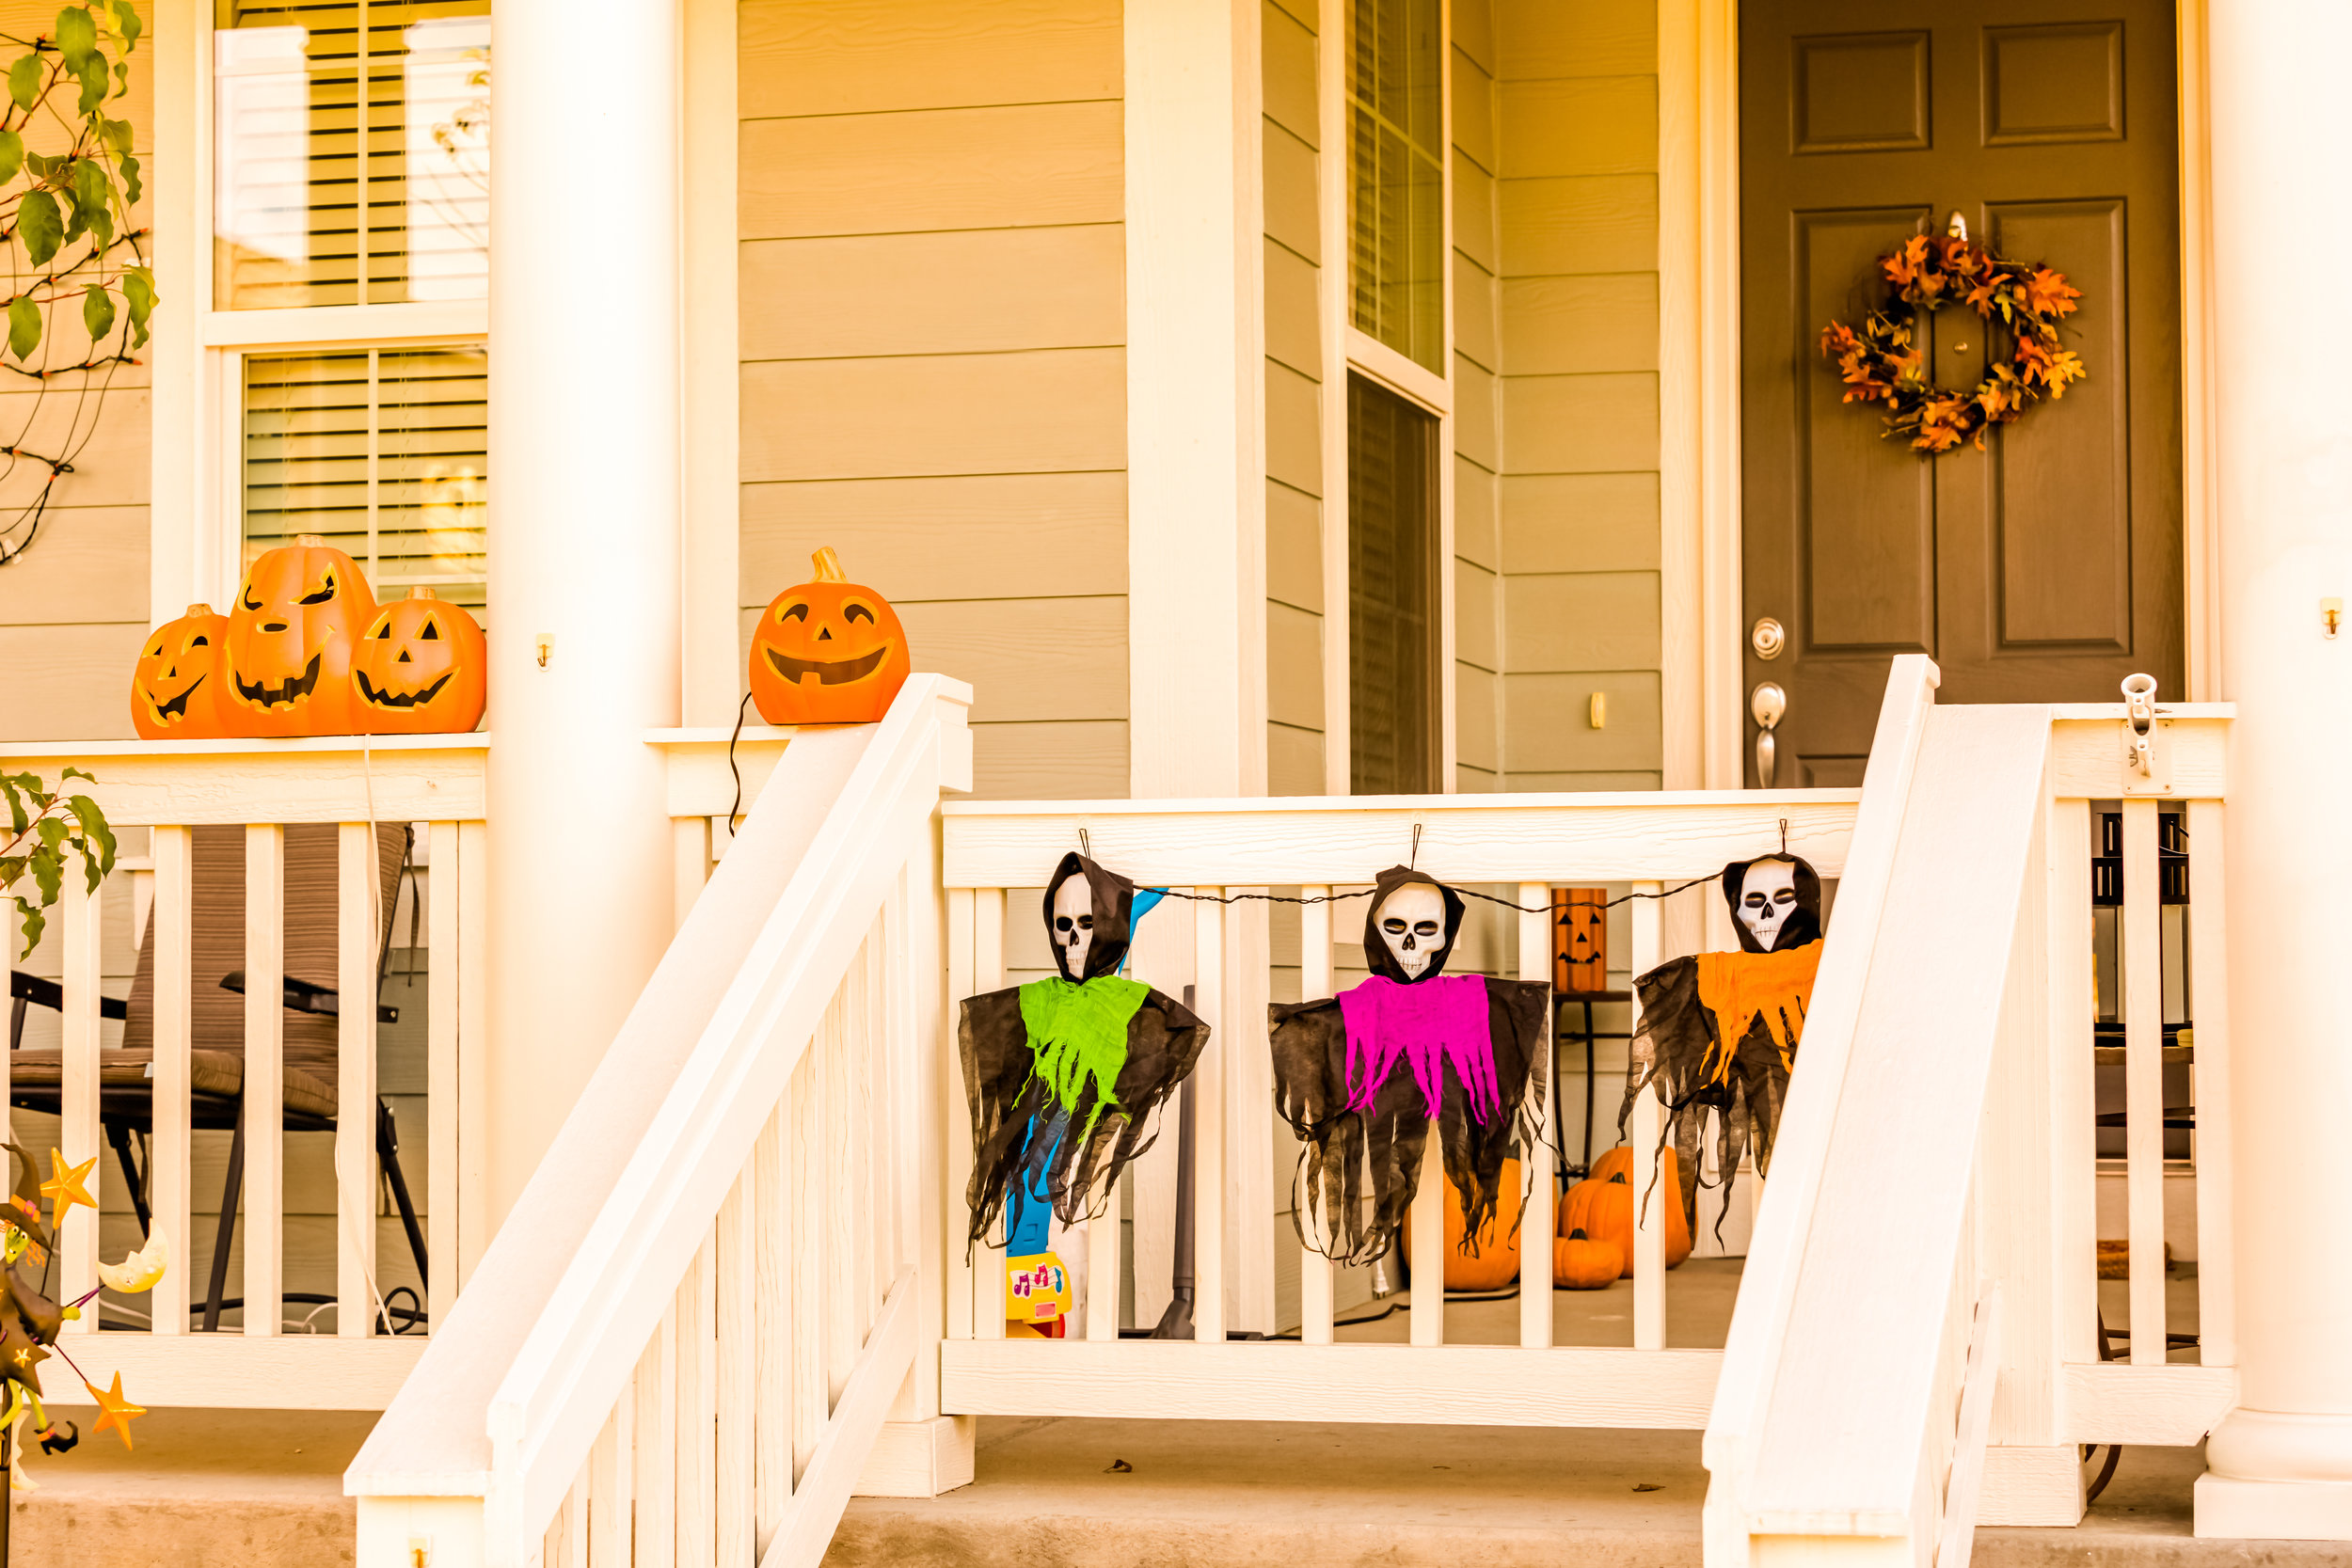 1. ONLY DECORATED HOUSES ARE PARTICIPATING! - Please don't knock on random doors ...